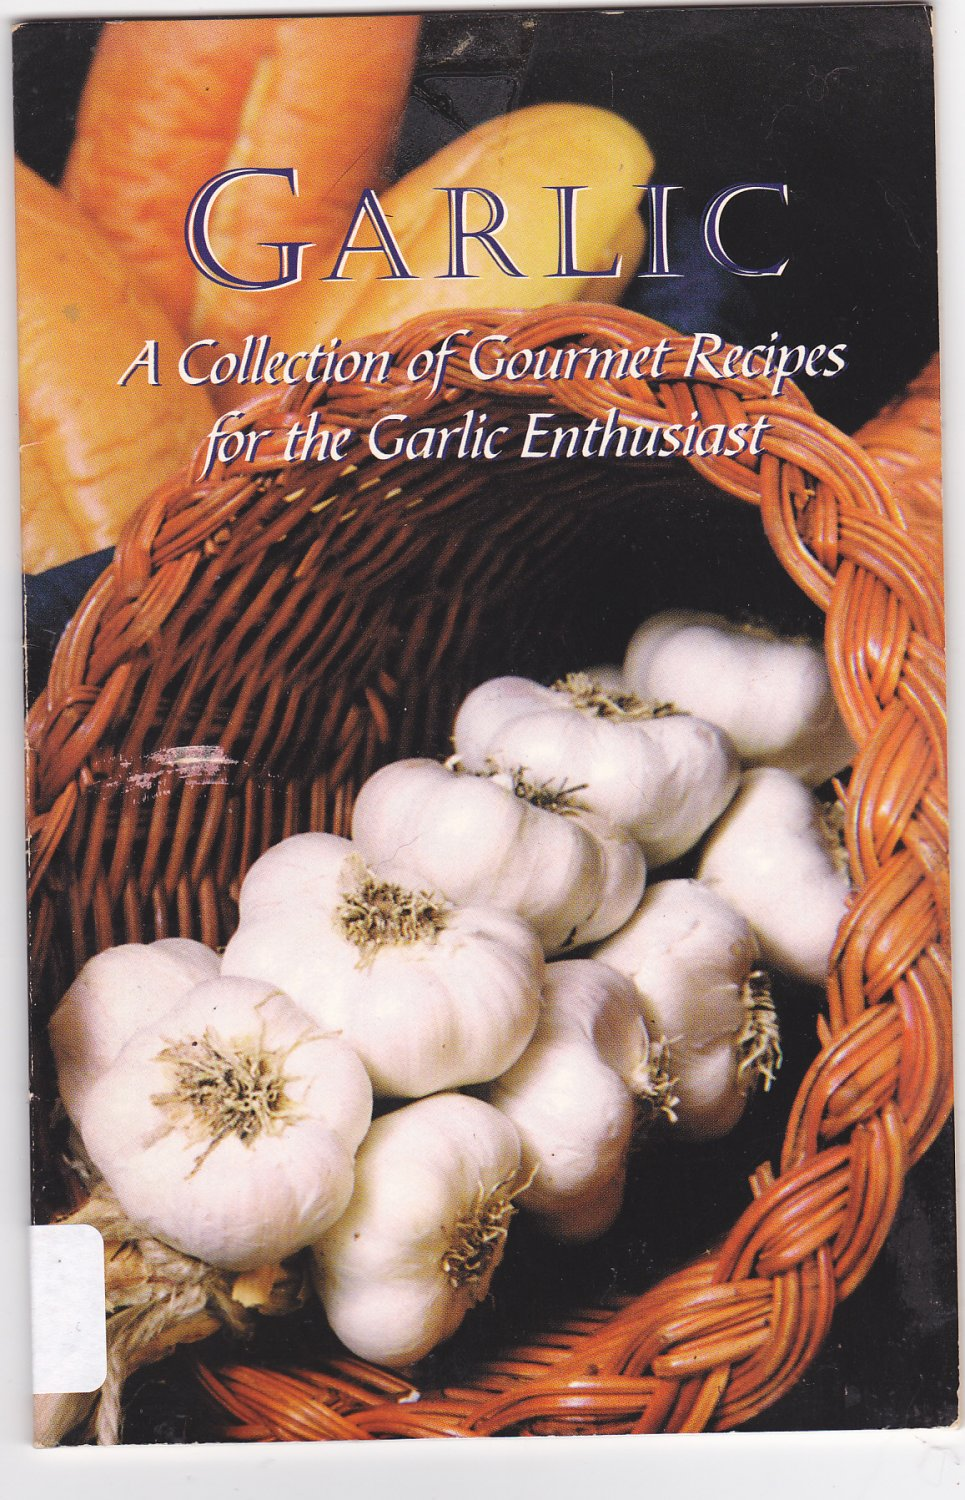 Garlic Recipes for the Gourmet Enthusiast 1995 Paperback Book - Very Good